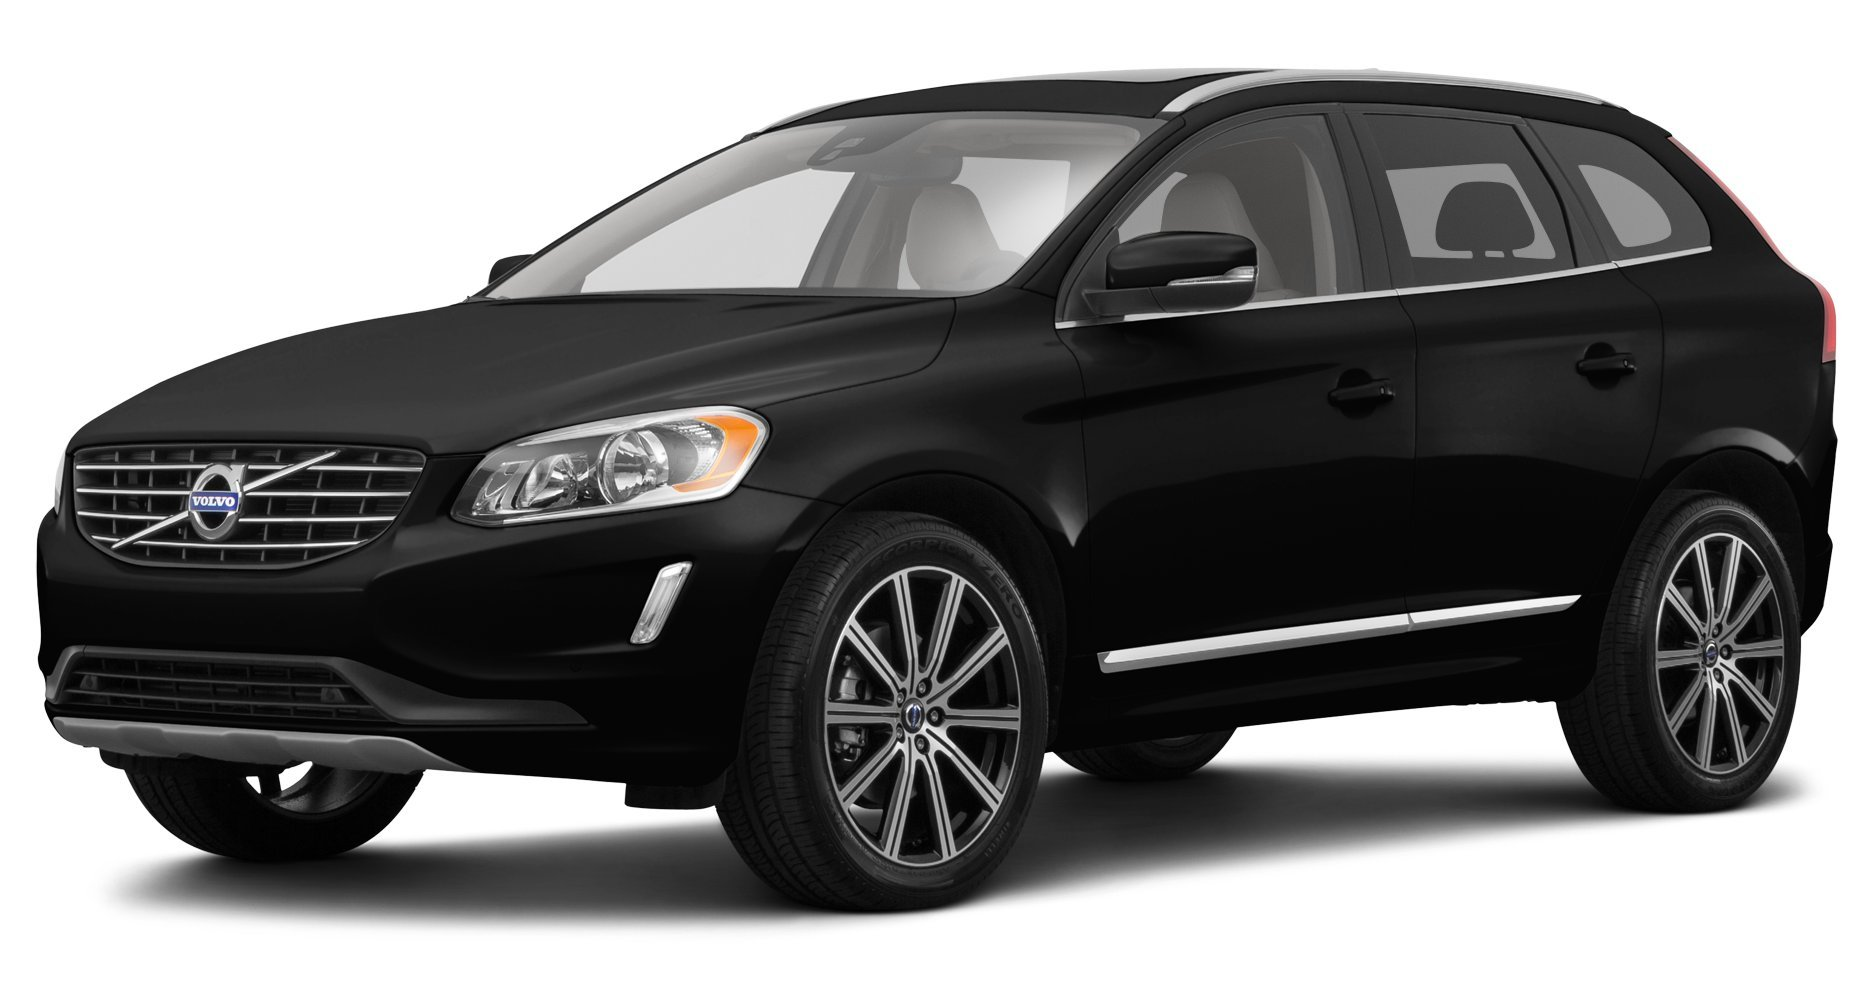 2016 volvo xc60 reviews images and specs vehicles. Black Bedroom Furniture Sets. Home Design Ideas